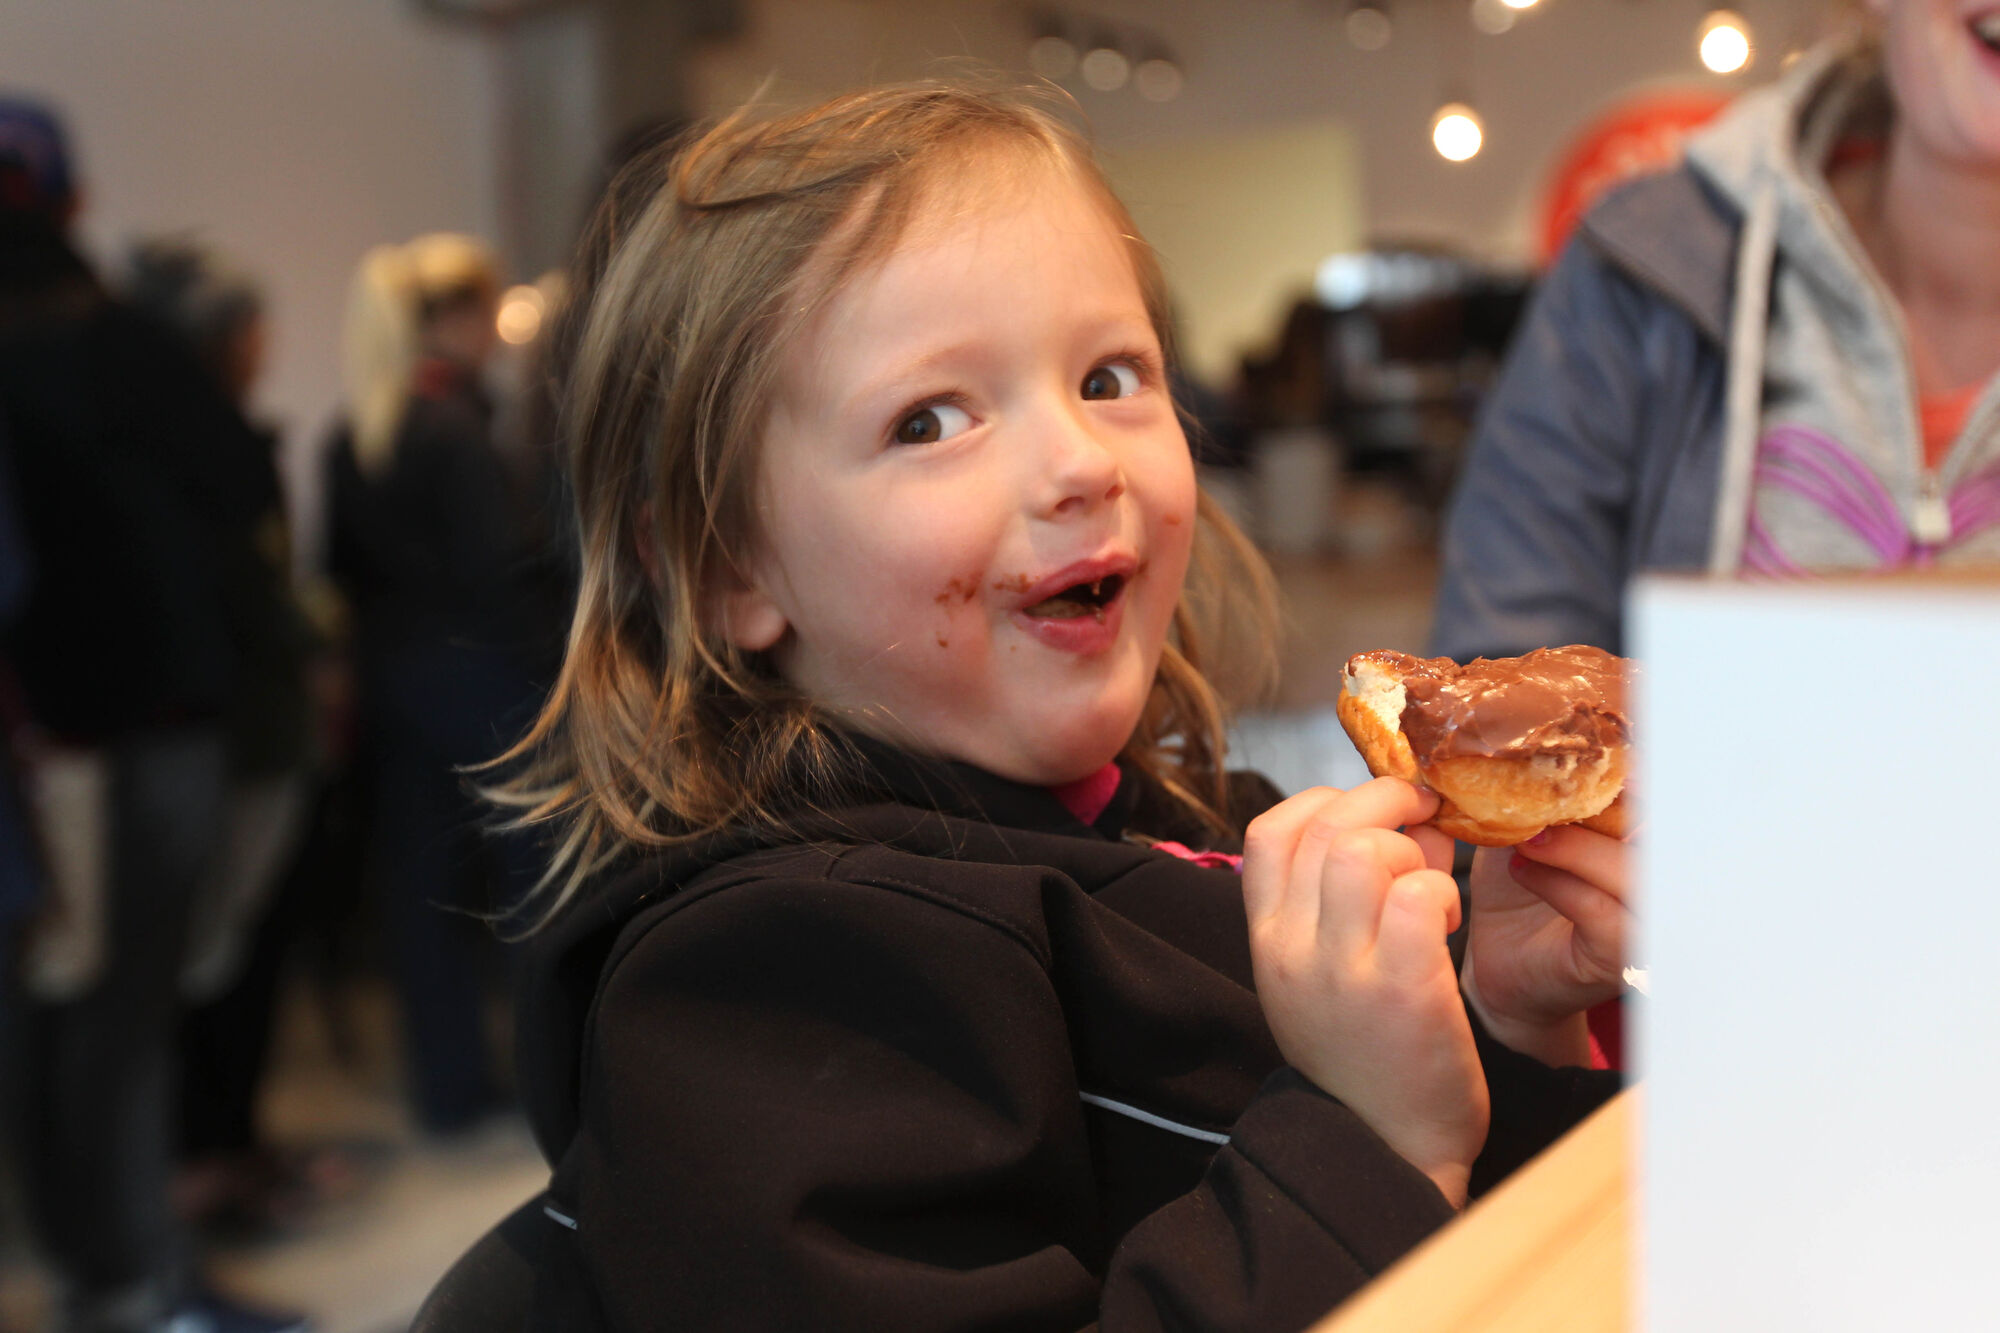 Four-year-old Myah Graham chomps into a Nutella Chocolate doughut on a recent Saturday morning visit with family.